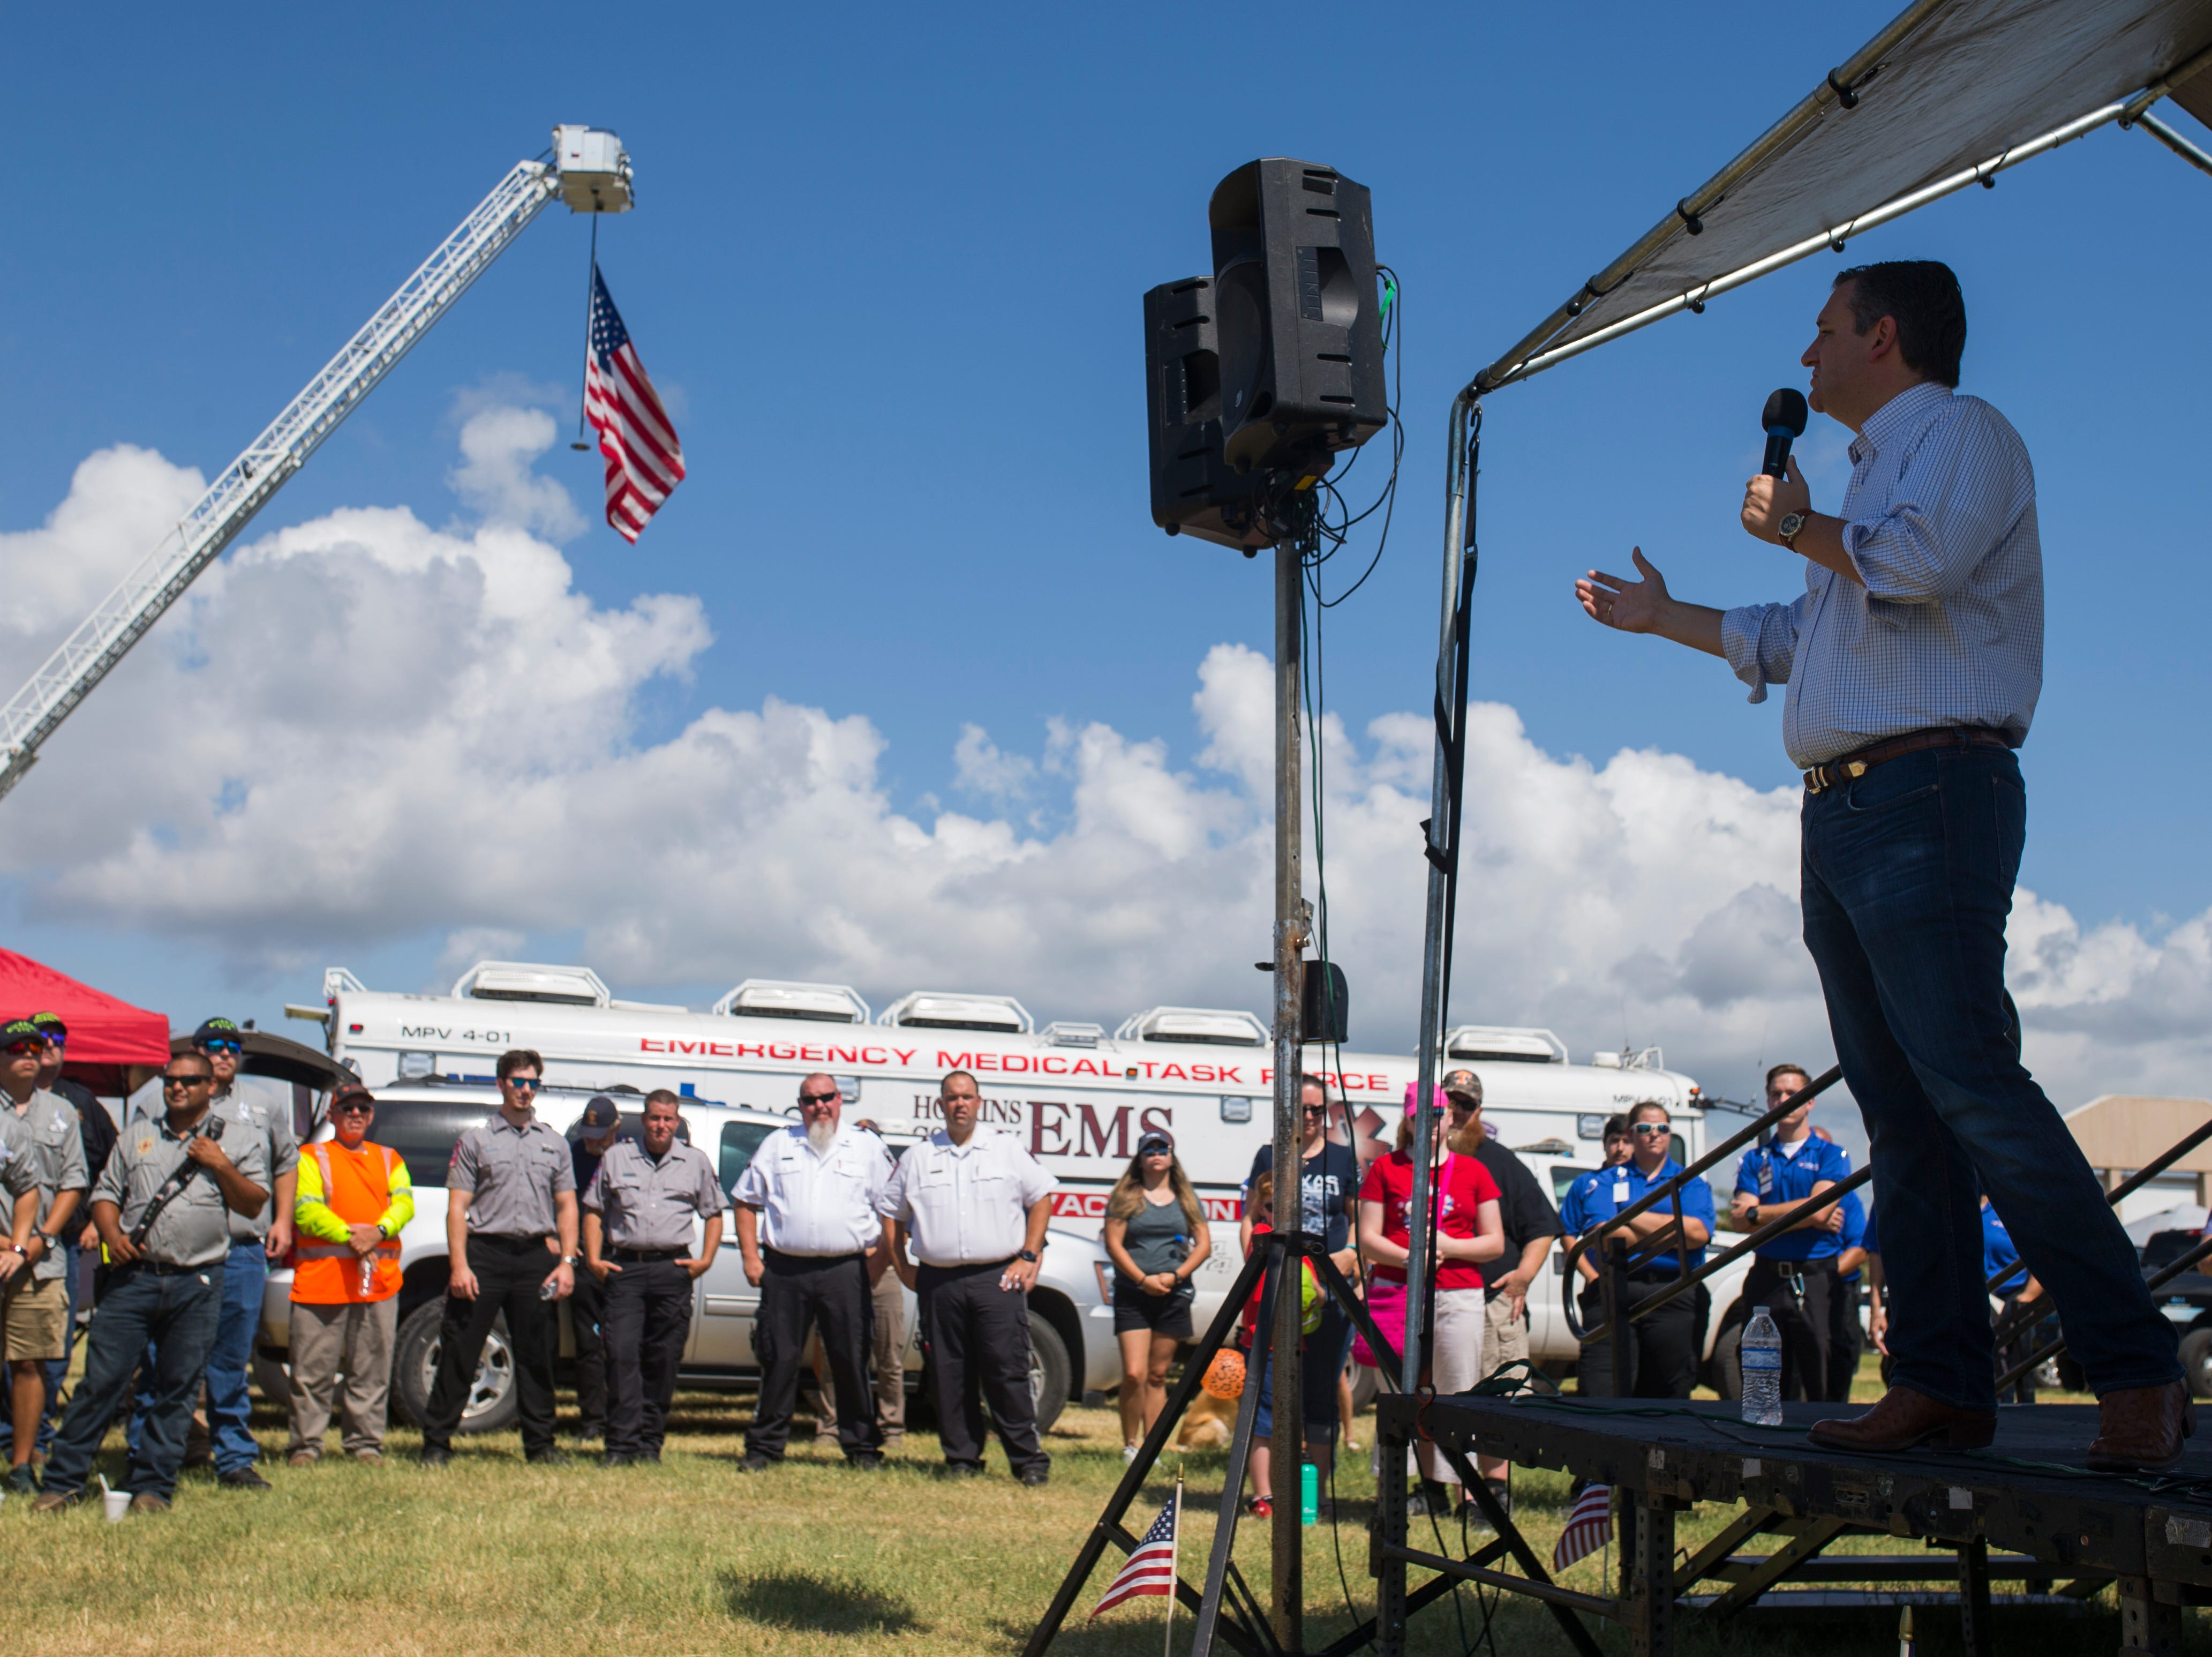 U.S. Sen. Ted Cruz speaks to members of Aransas County during a remembrance ceremony for the anniversary of Hurricane Harvey and to honor first responders on Saturday, Aug. 25, 2018 in Rockport.